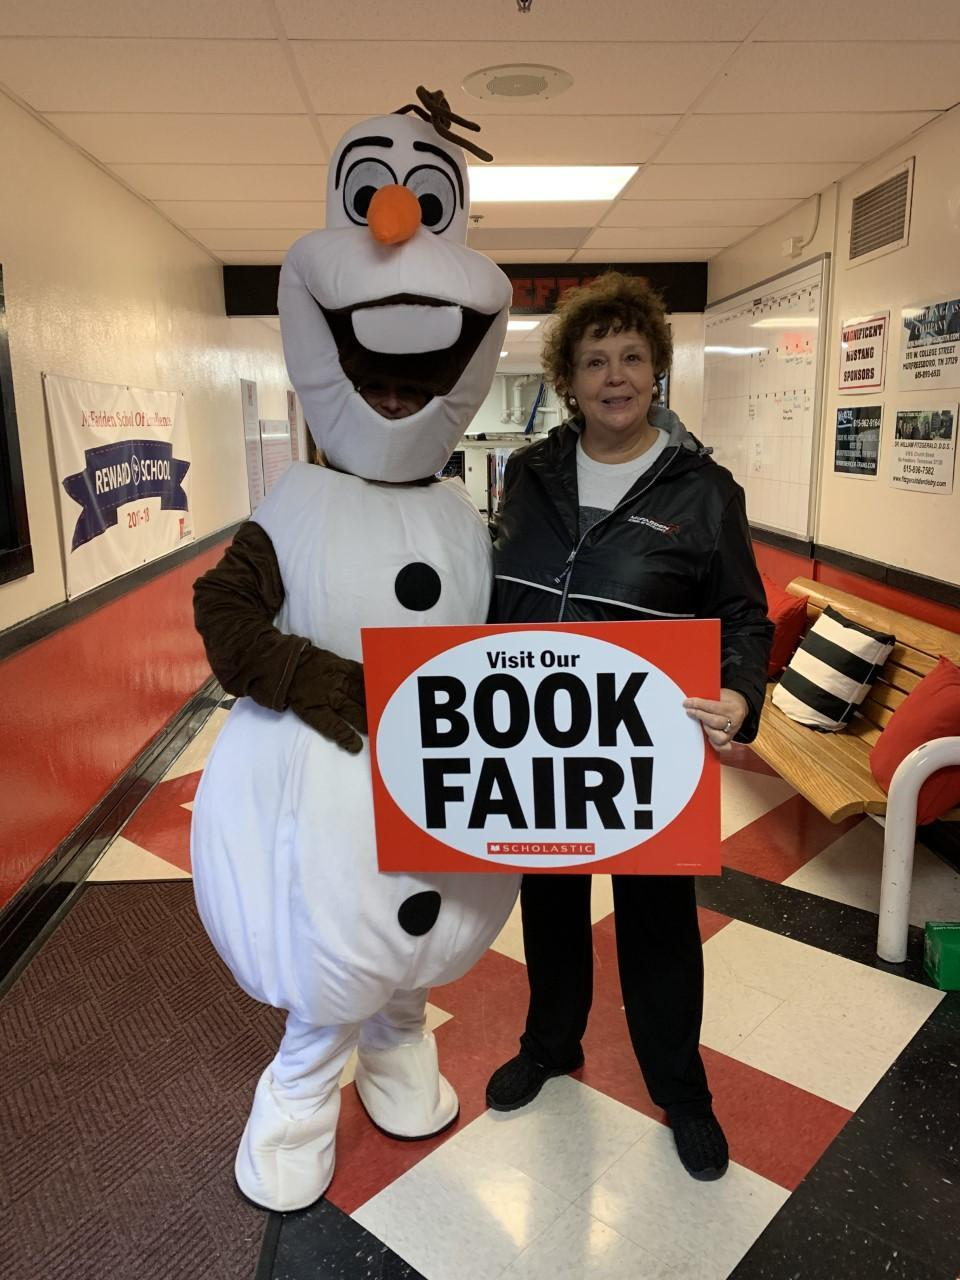 Mrs. Butrum and Olaf promote the book fair!